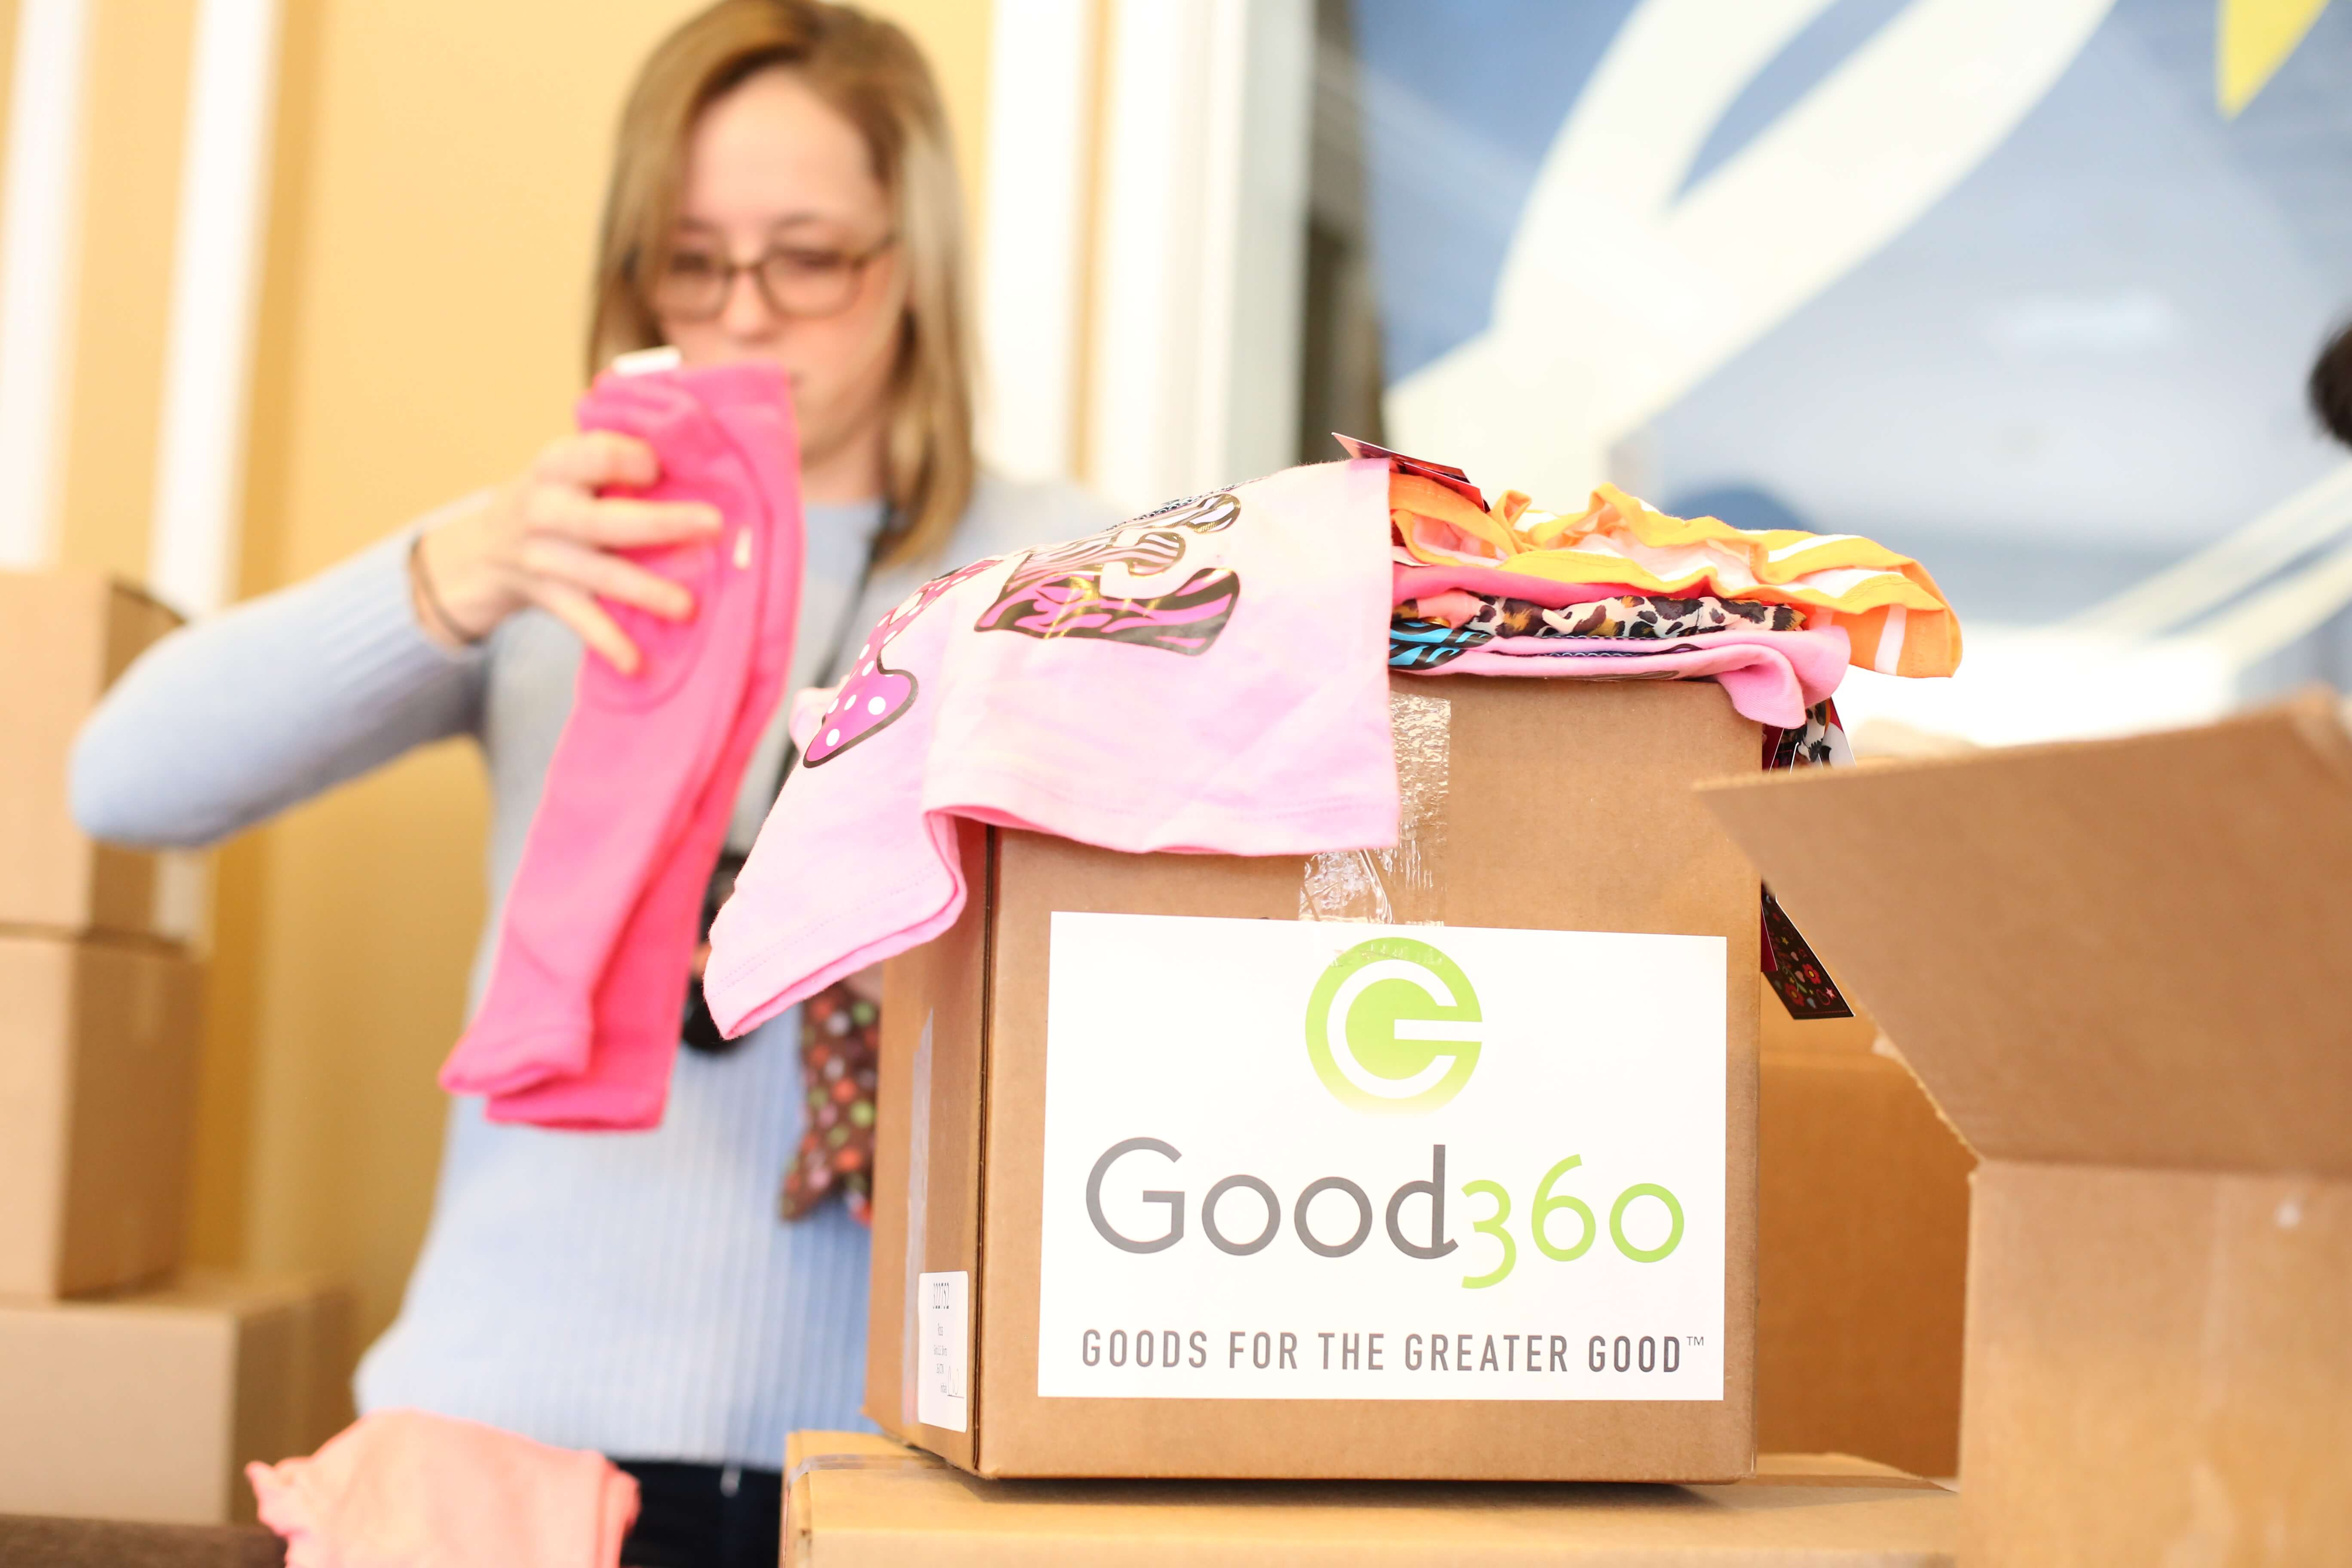 Product Donations: What Top Brands Give to Good360 - Good360